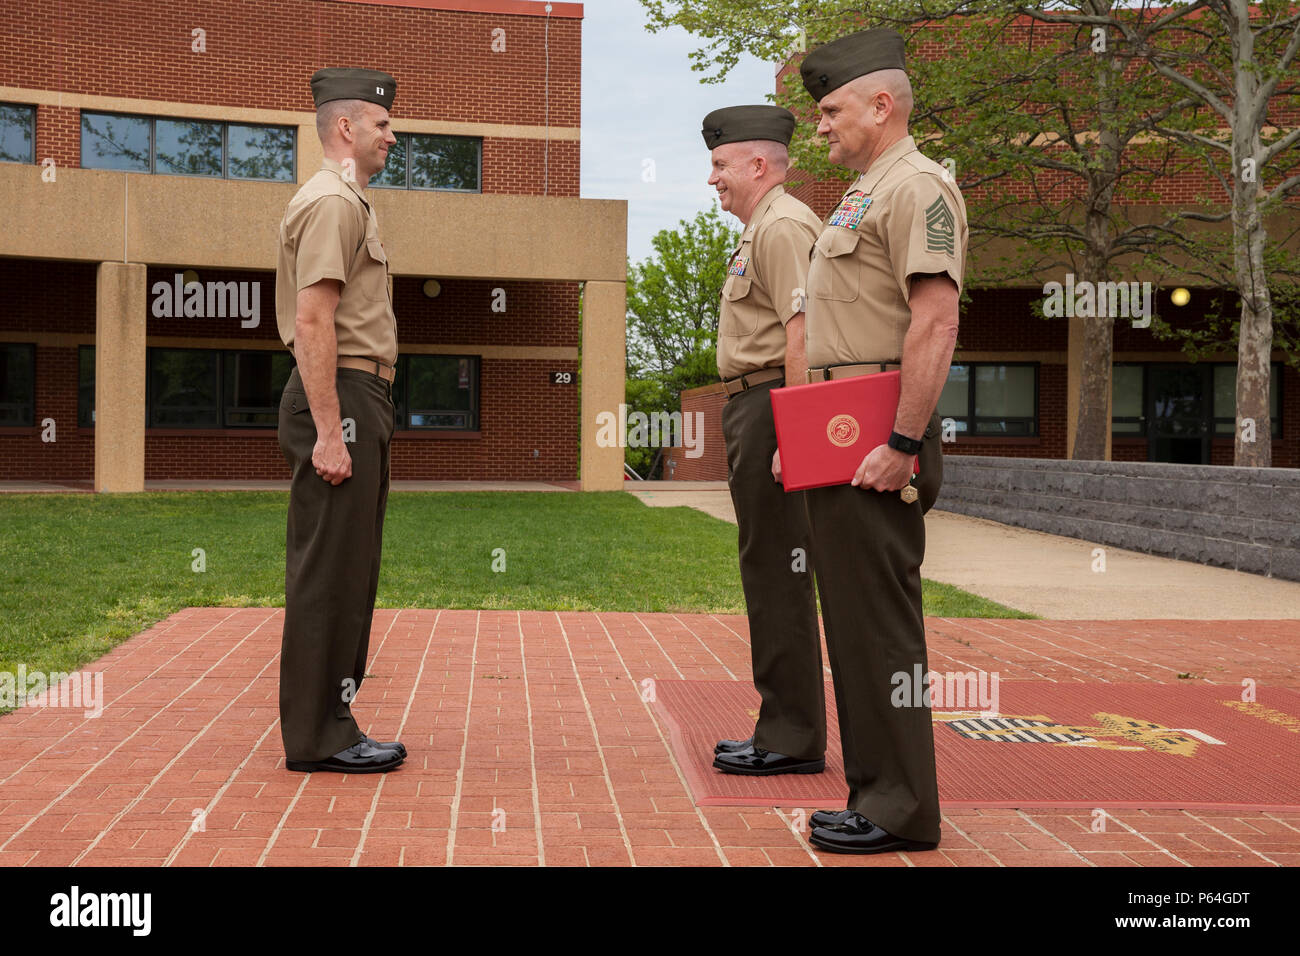 U.S. Marine Corps Capt. Jeffrey J. Rollins, left, supply officer for Headquarters and Services (H&S) Battalion, Joint Base Myer-Henderson Hall, stands at the position of attention with Col. Andrew M. Regan, middle, commanding officer, H&S Battalion, and Sergeant Maj. Robert B. Pullen, battalion sergeant major of H&S Battalion, during his award ceremony at Henderson Hall, Arlington, Va., April 22, 2016. Rollins was awarded the Navy and Marine Corps Commendation Medal, and Regan was awarded the Defense Superior Service Medal. (U.S. Marine Corps photo by Lance Cpl. Hailey D. Stuart/Released) - Stock Image